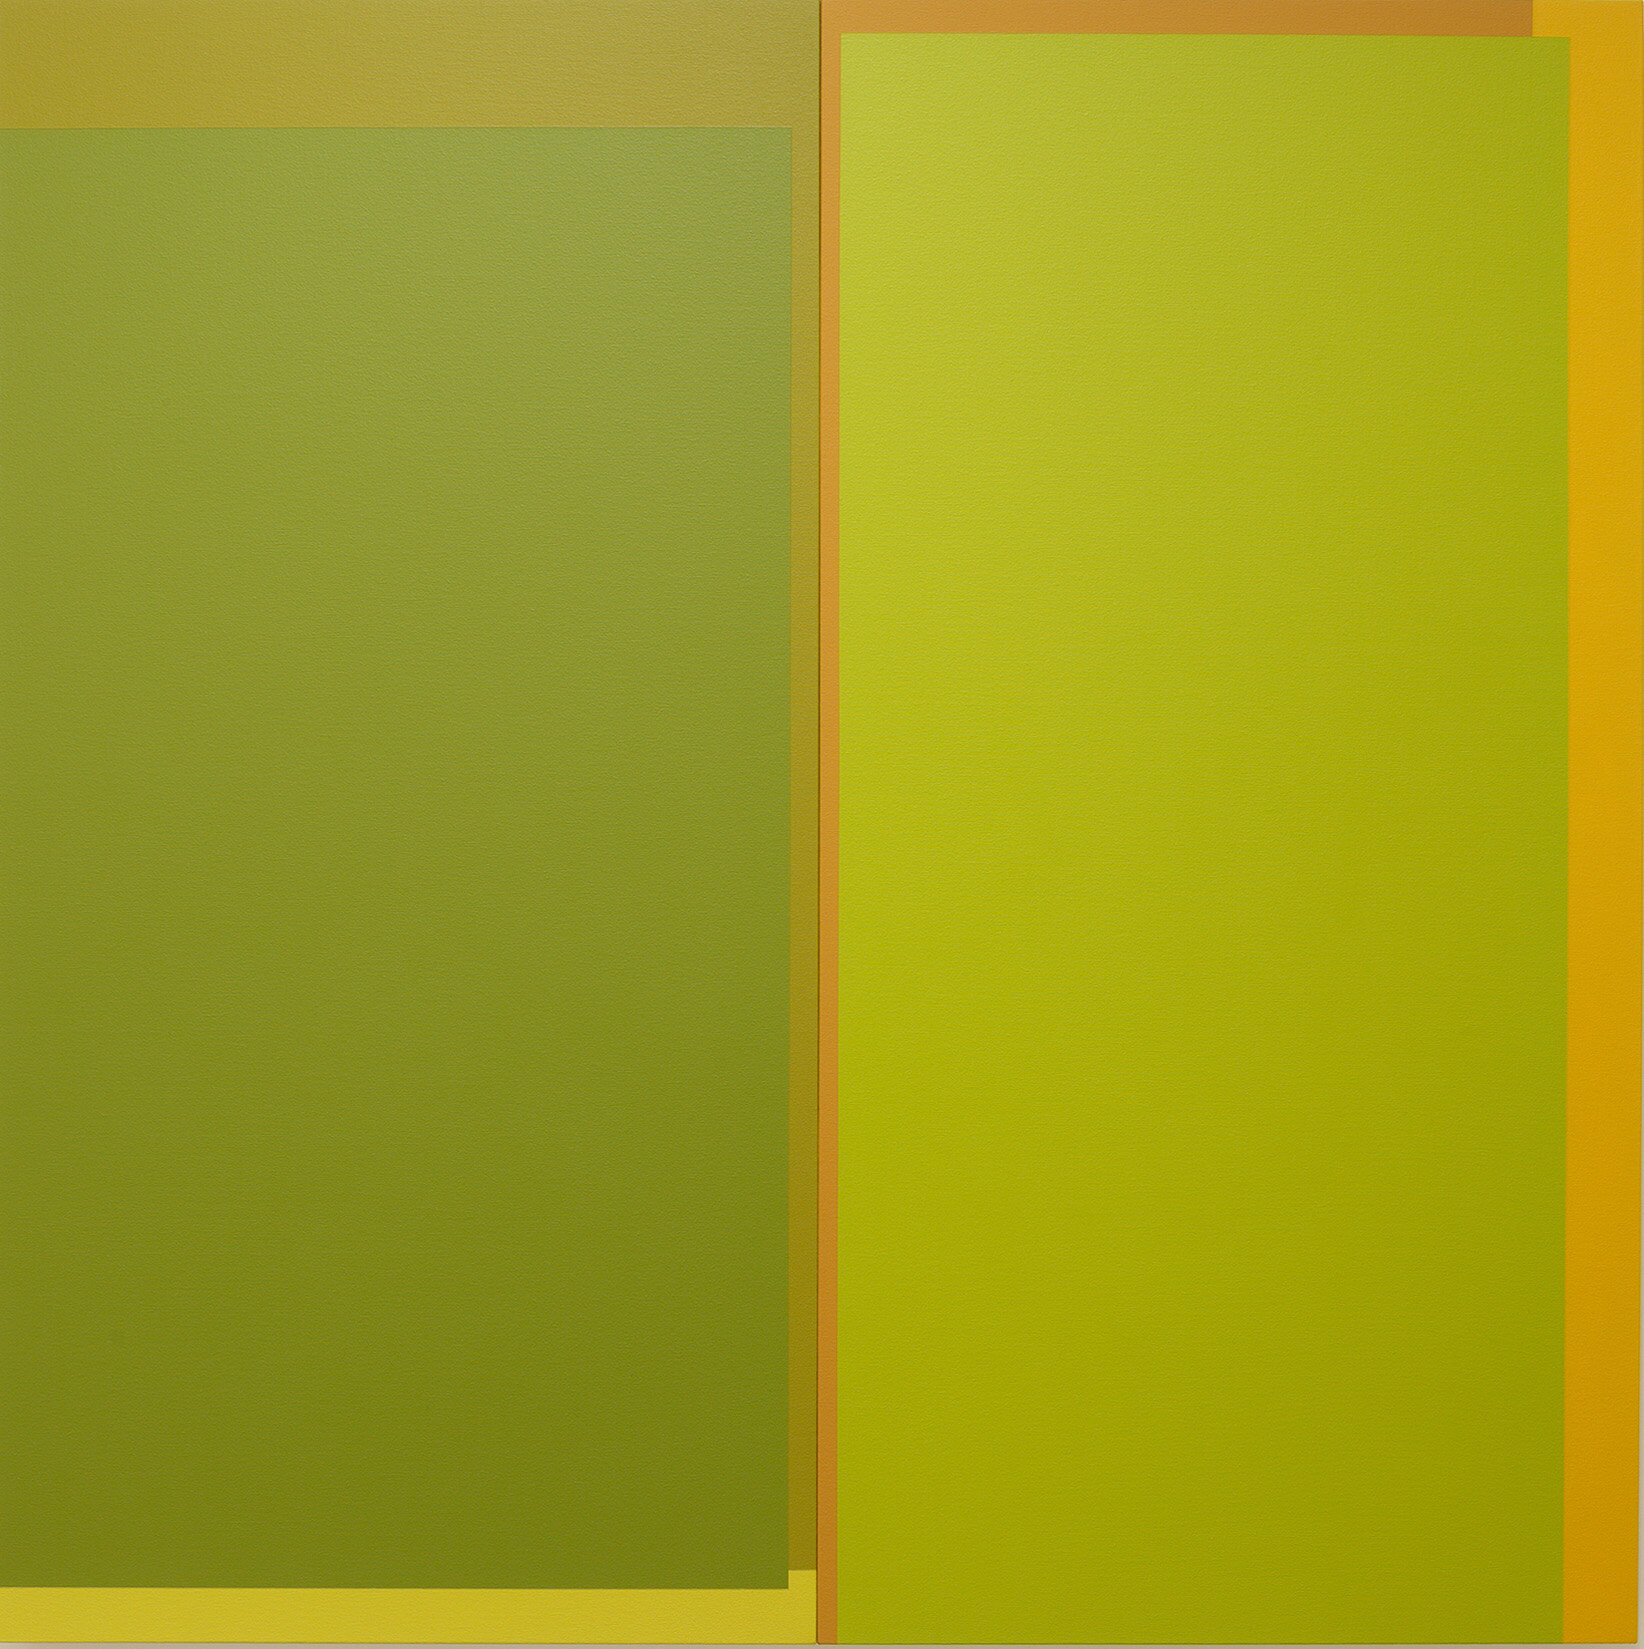 Antonelli , 2015  acrylic on canvas 44 x 44 inches; 111.8 x 111.8 centimeters